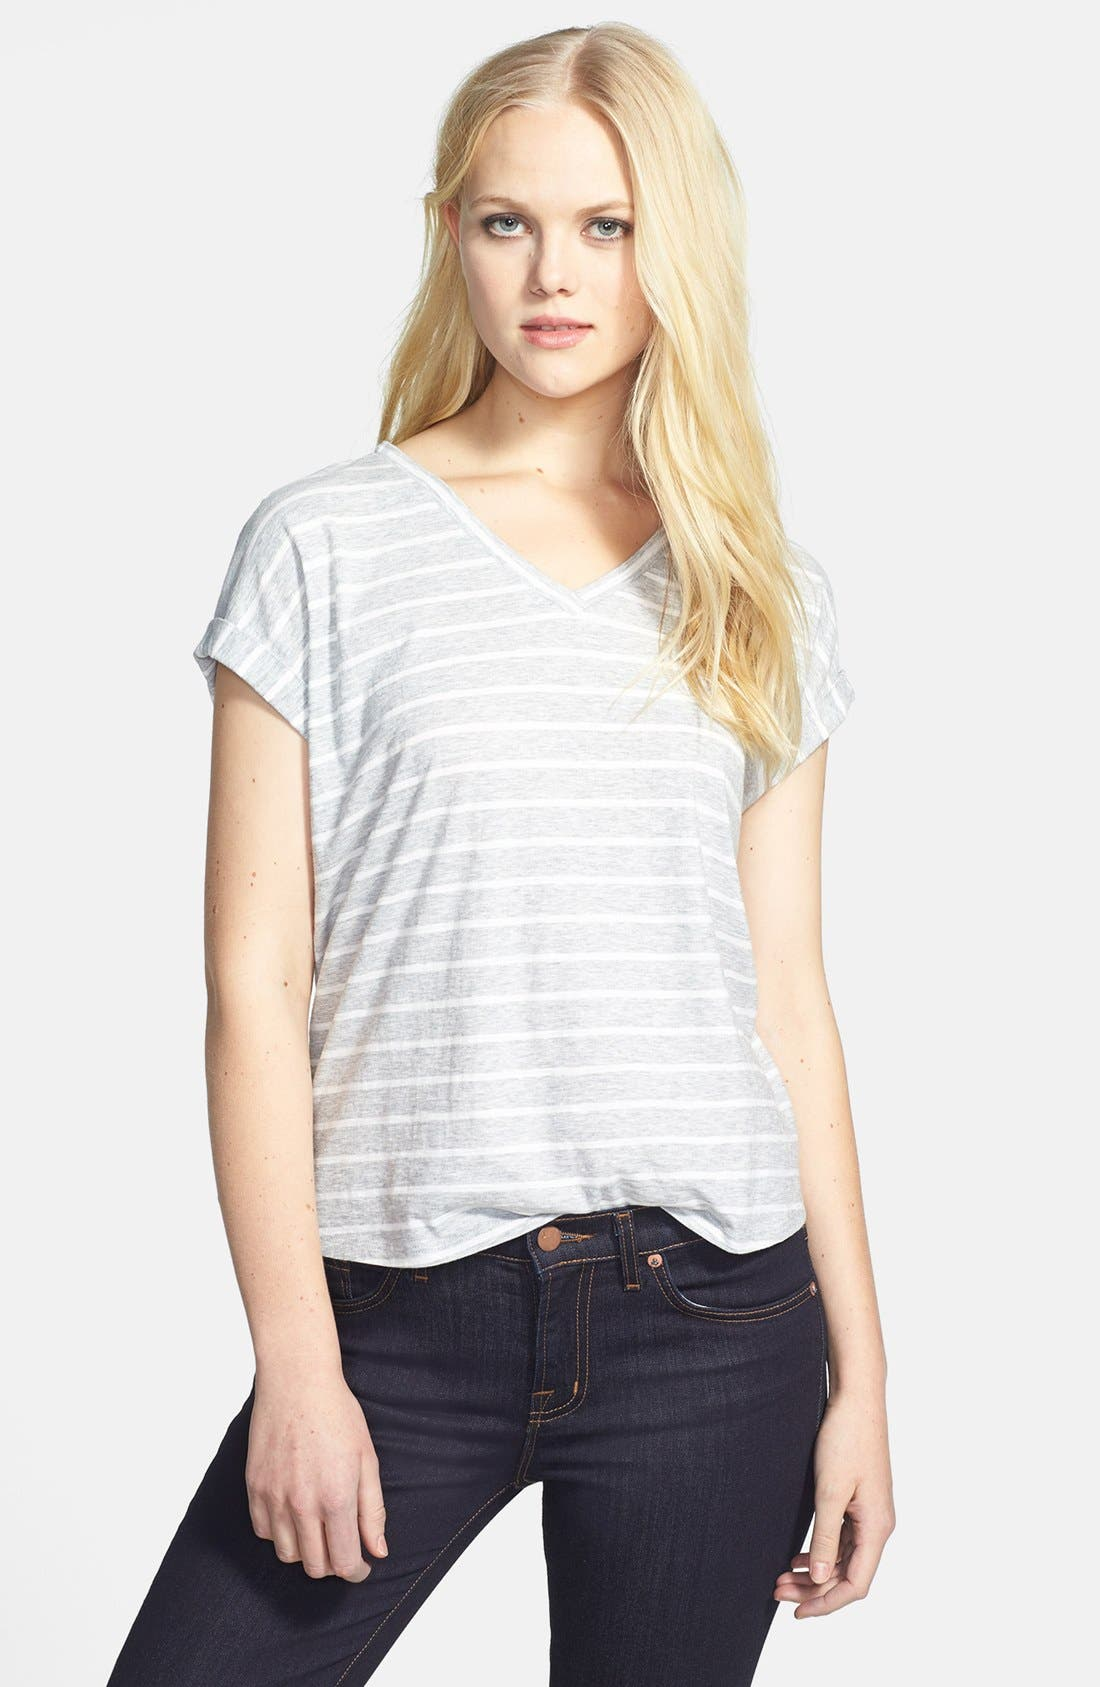 Alternate Image 1 Selected - Two by Vince Camuto 'Pinpoint Stripe' Cotton V-Neck Tee